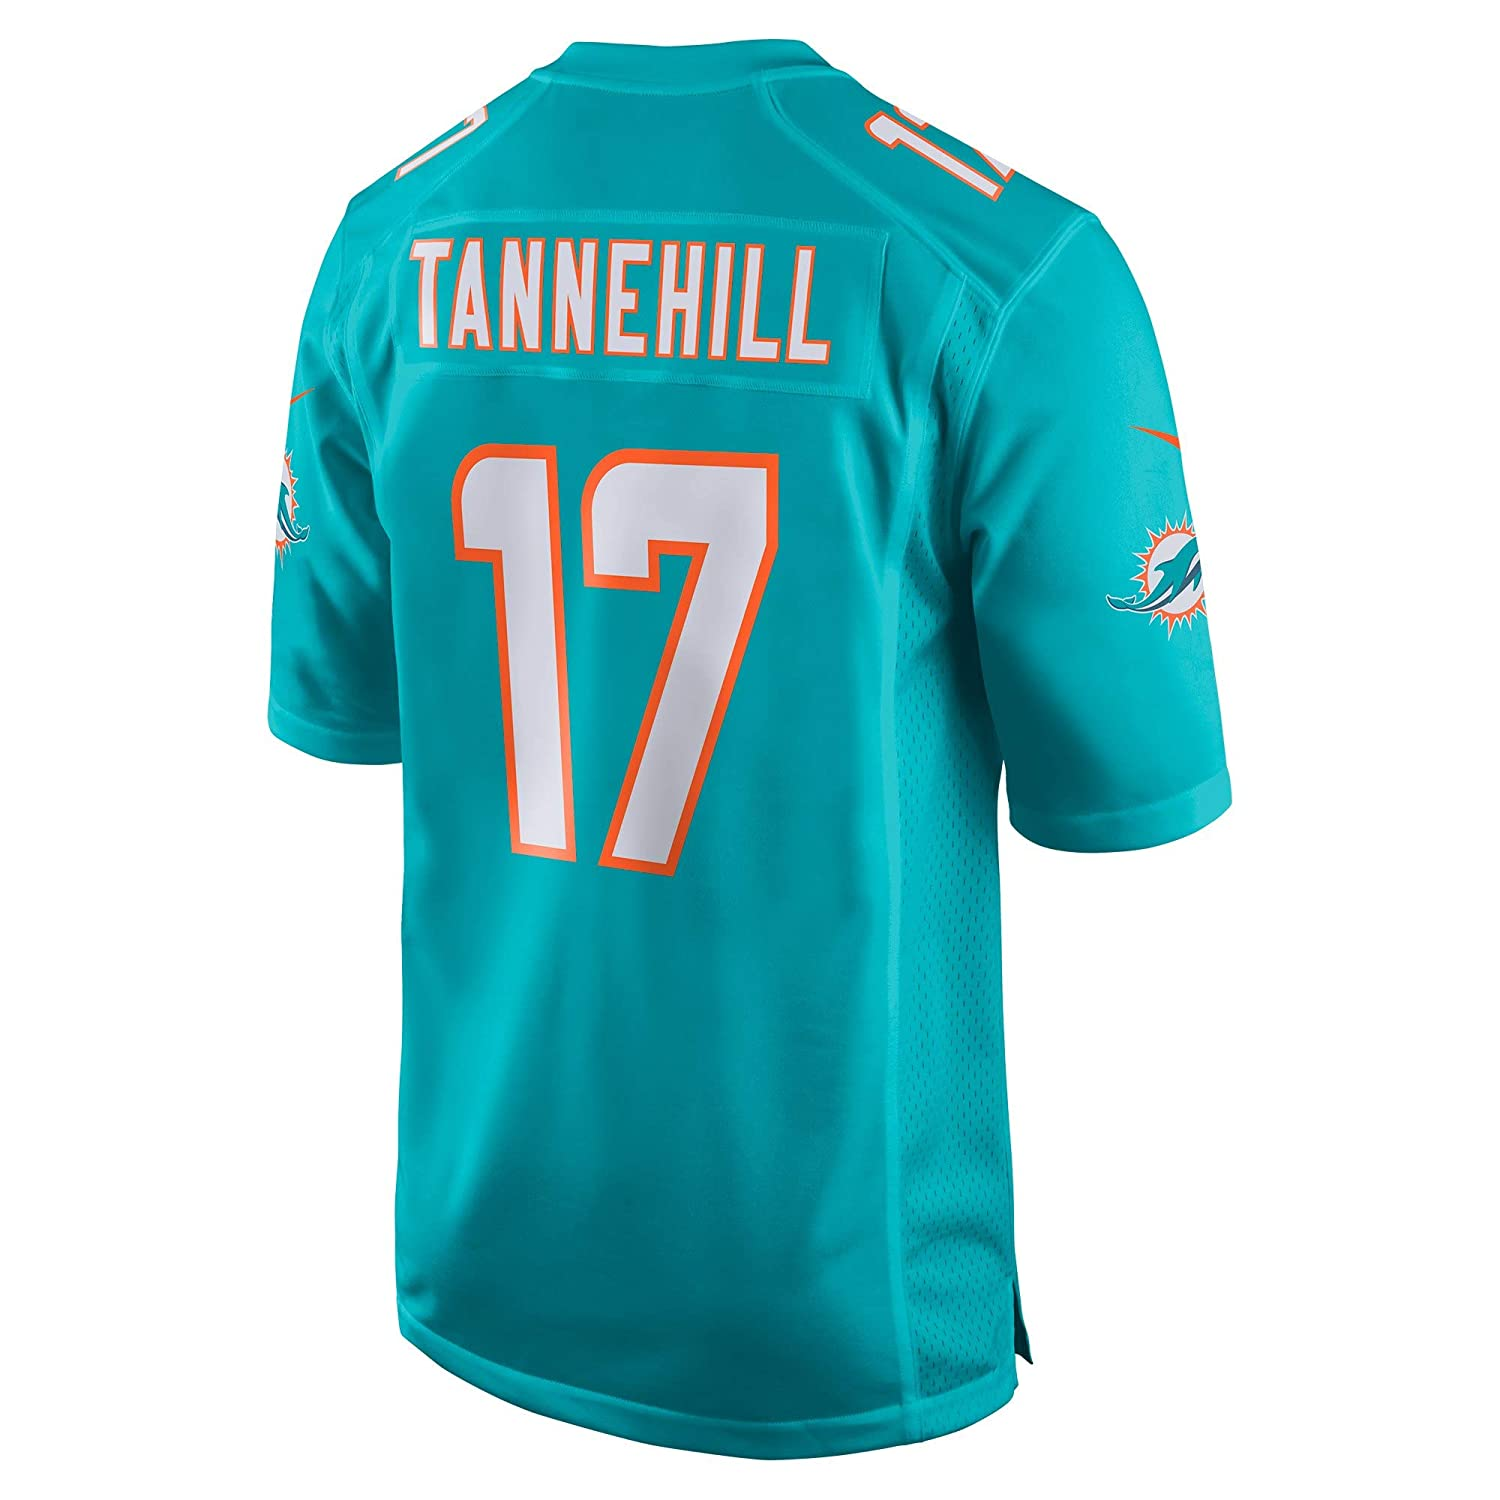 67b5c1c4 Amazon.com : Nike Ryan Tannehill Miami Dolphins NFL Youth 8-20 Aqua Teal  Home On-Field Player Jersey : Clothing